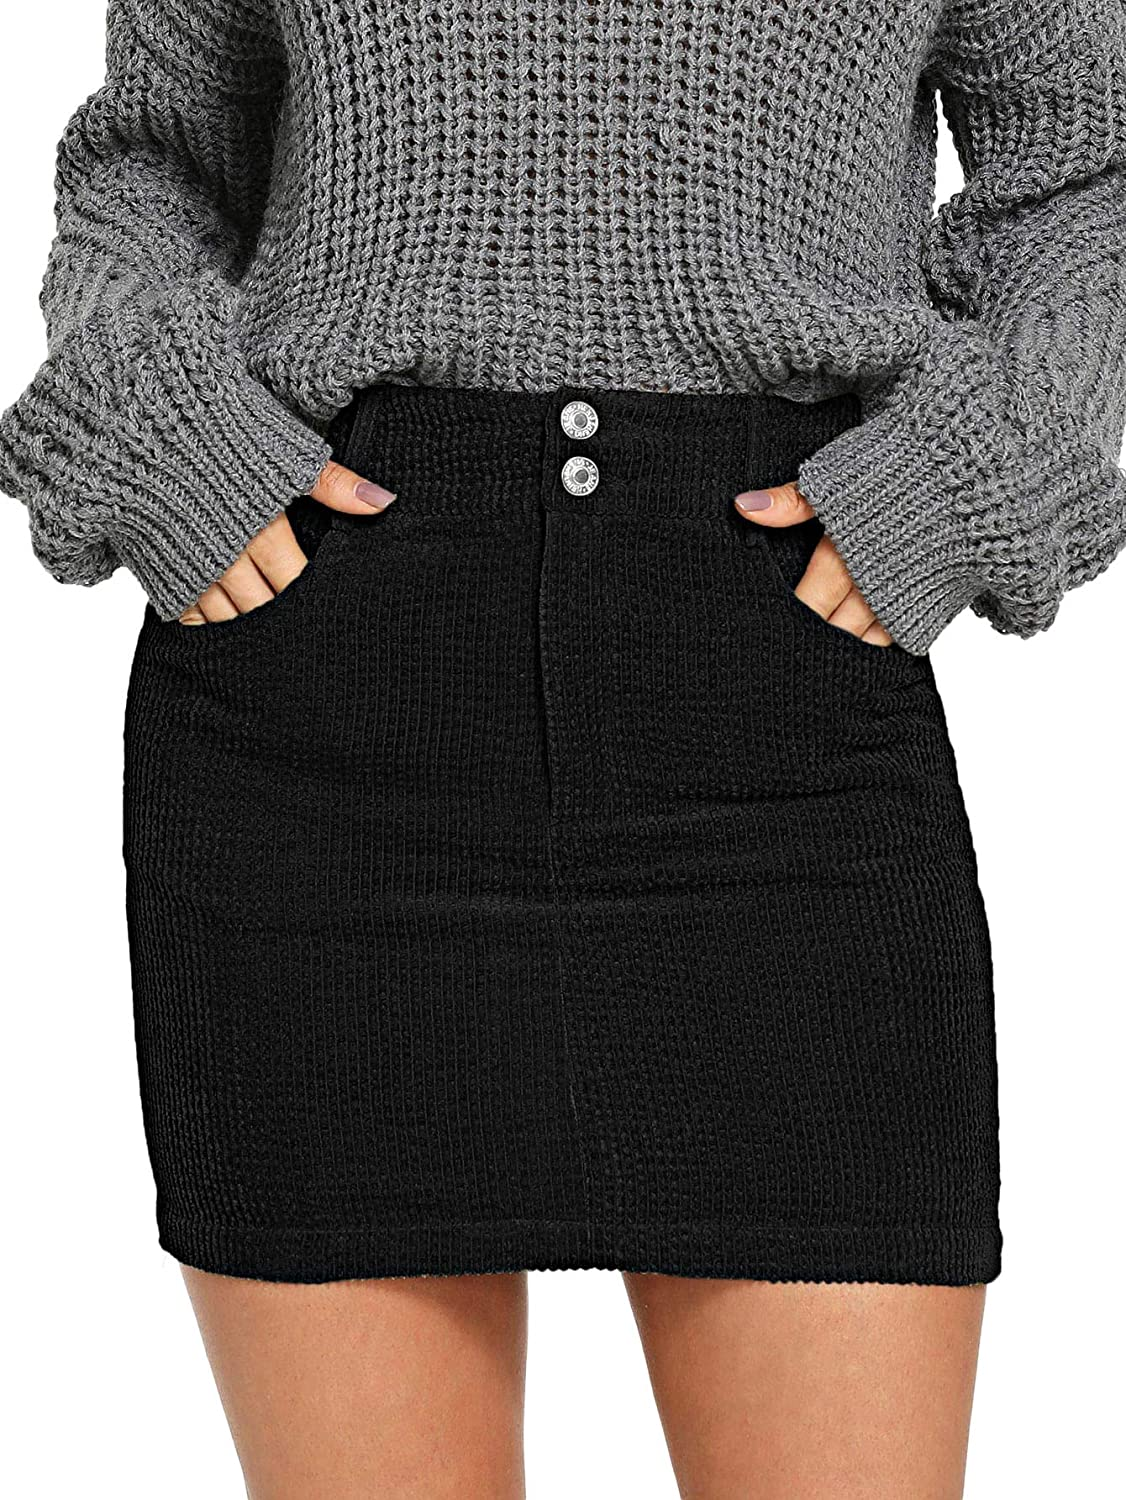 Black WDIRARA Women's Mid Waist Button Front Above Knee Bodycon Corduroy Short Skirt